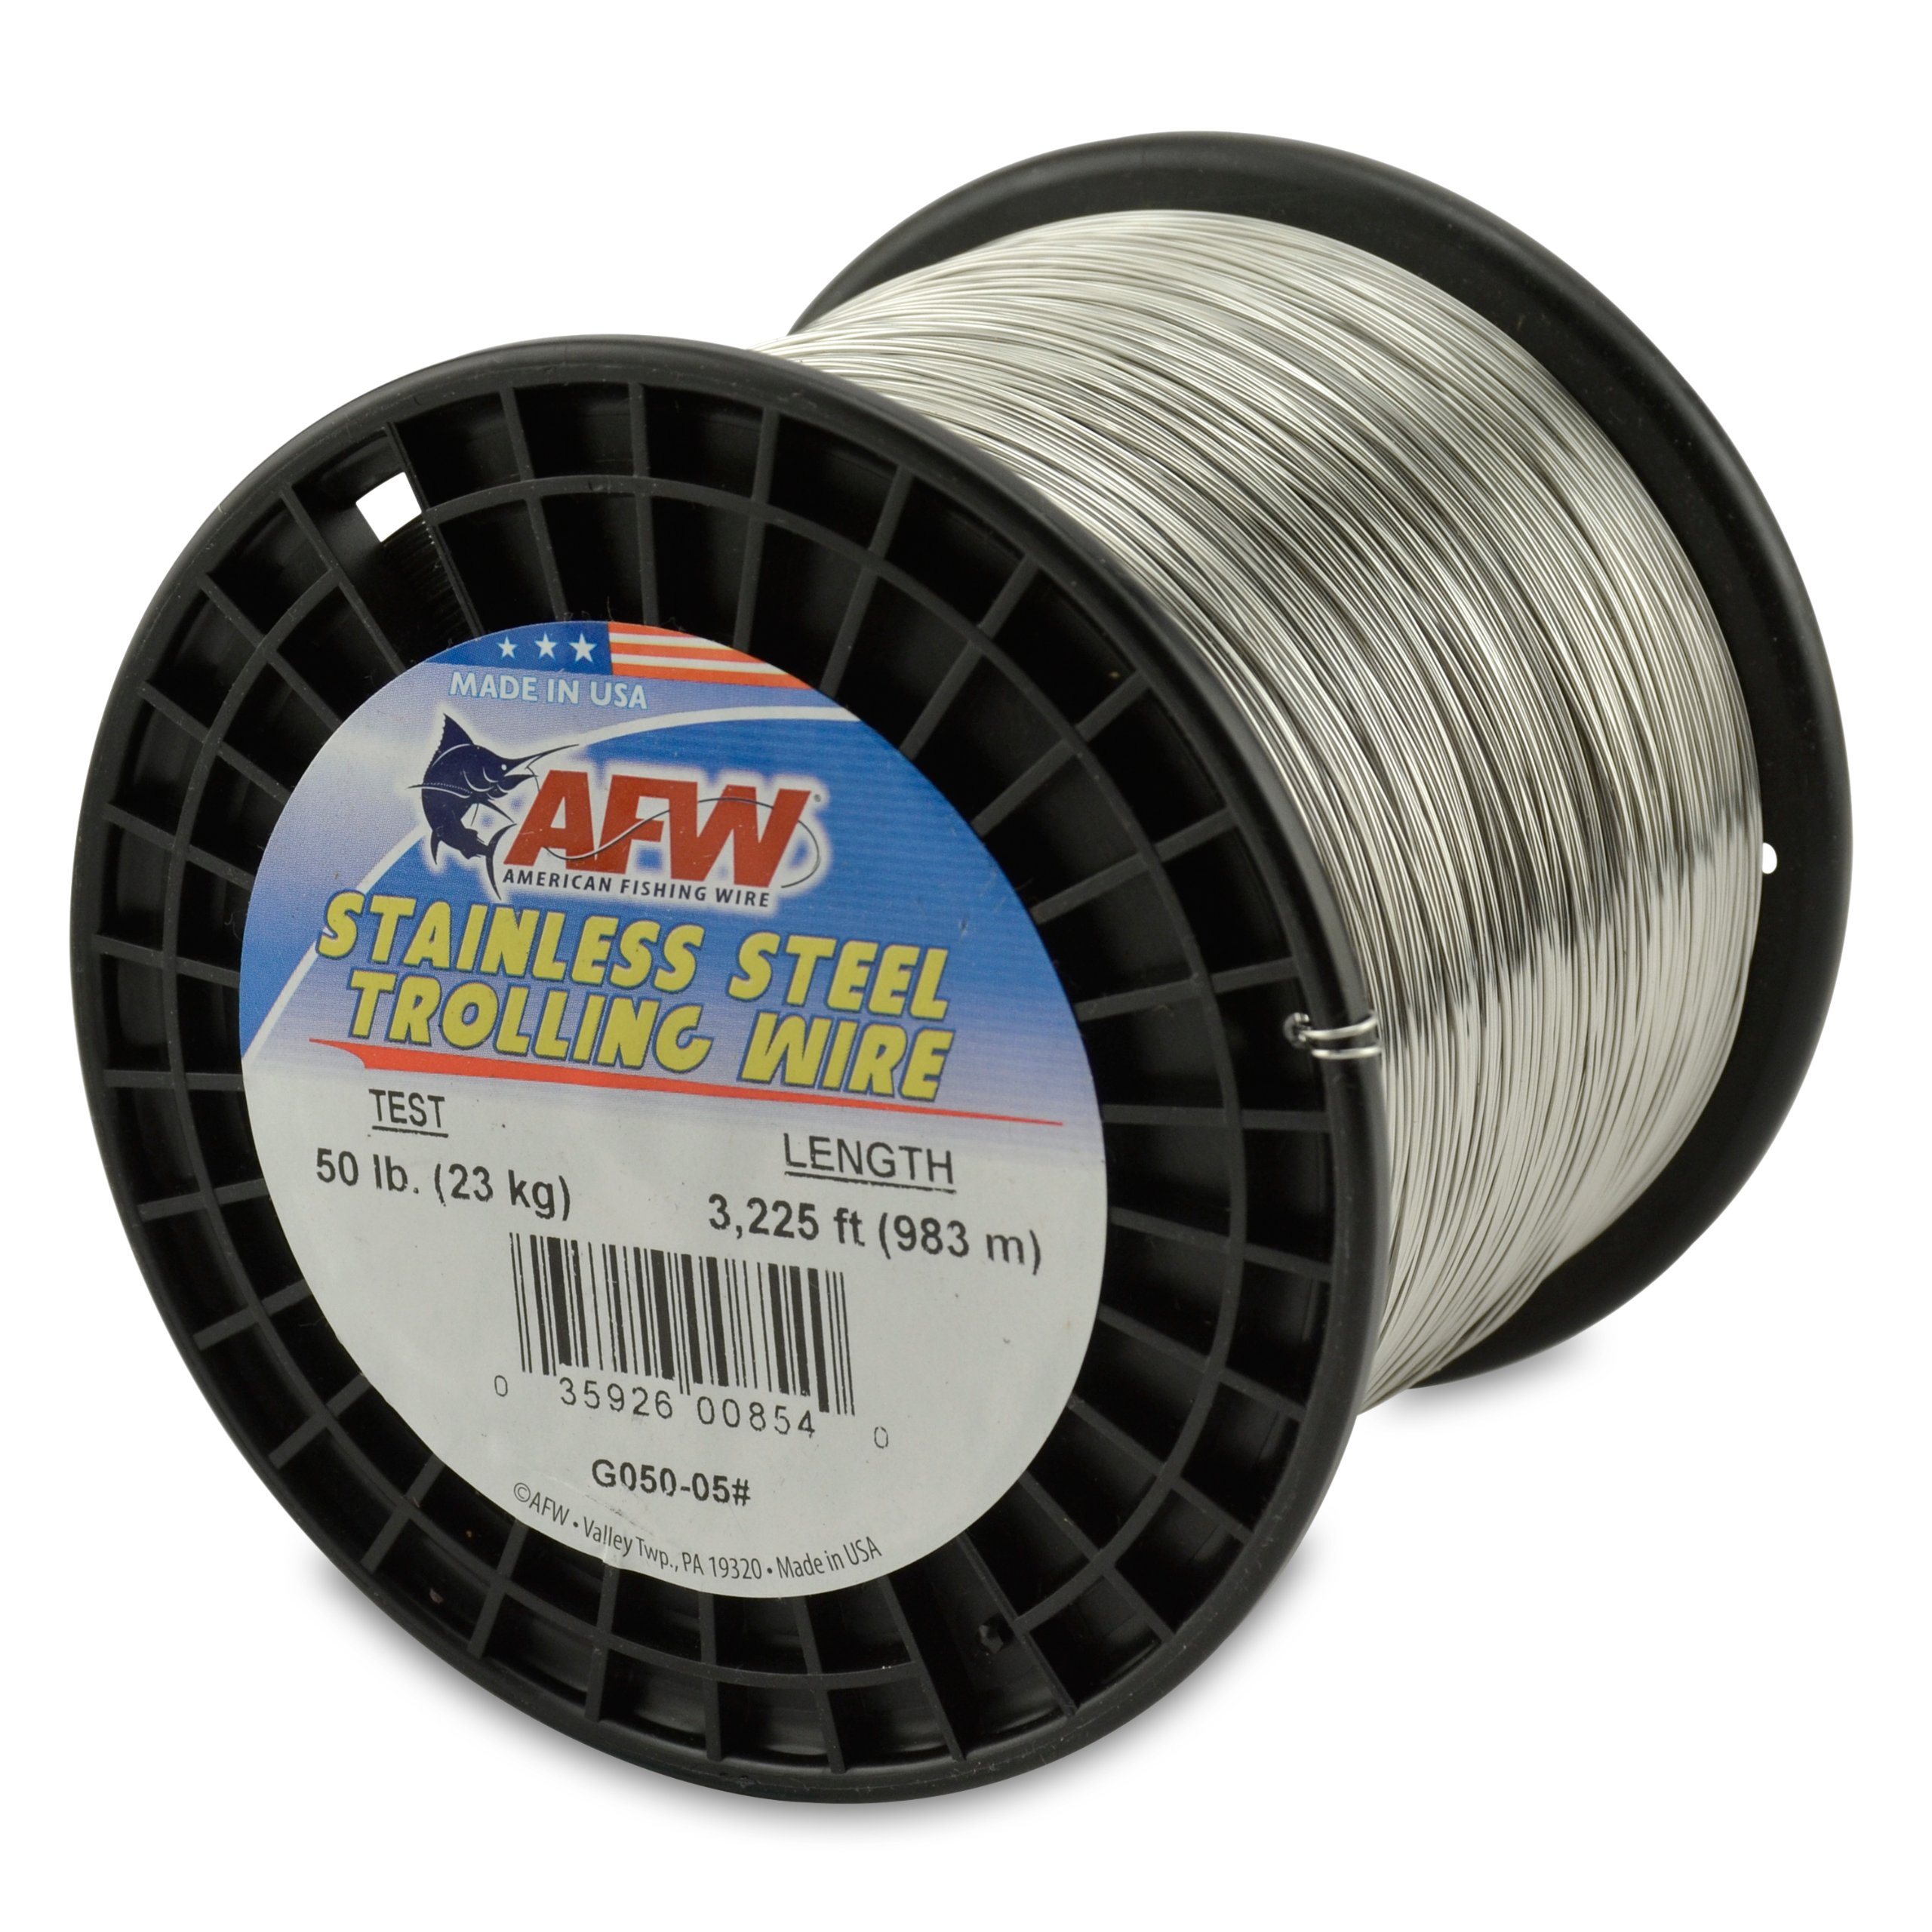 American Fishing Wire Stainless Steel Trolling Wire, 50-Pound Test/0.61mm Dia/982m by American Fishing Wire